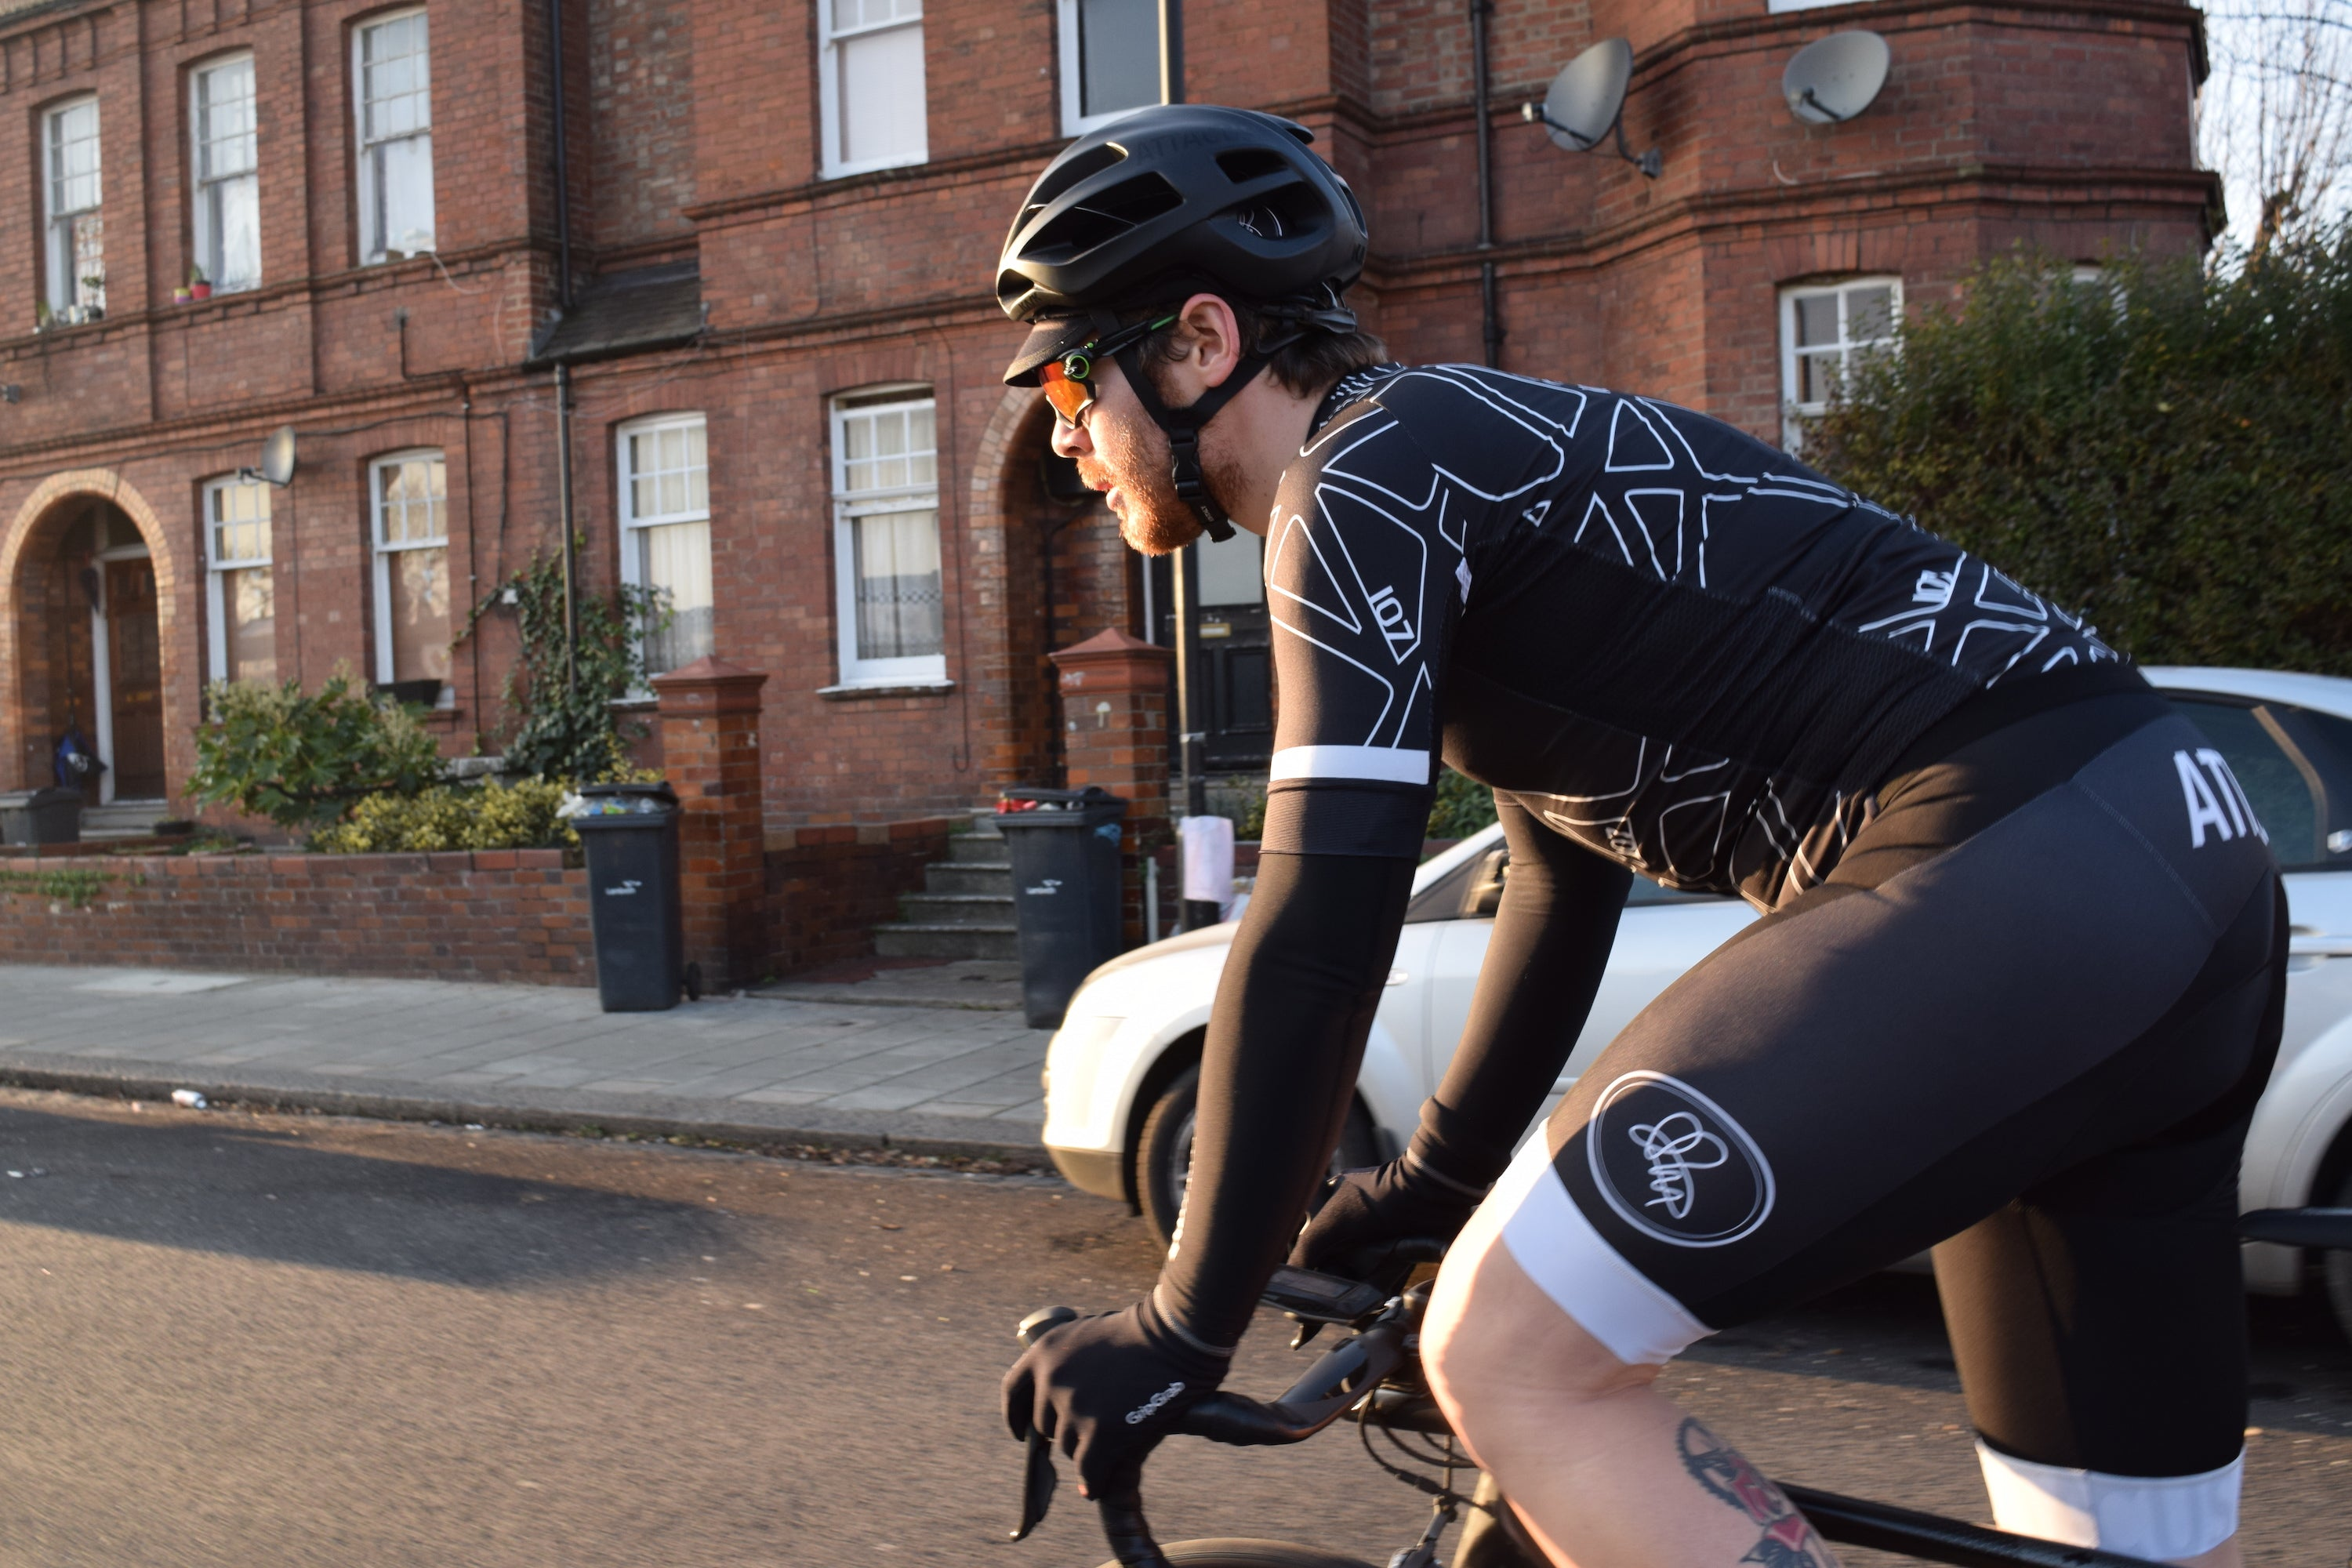 Chris Hall rides 107 for 107 in Attacus Cycling jersey and bib shorts